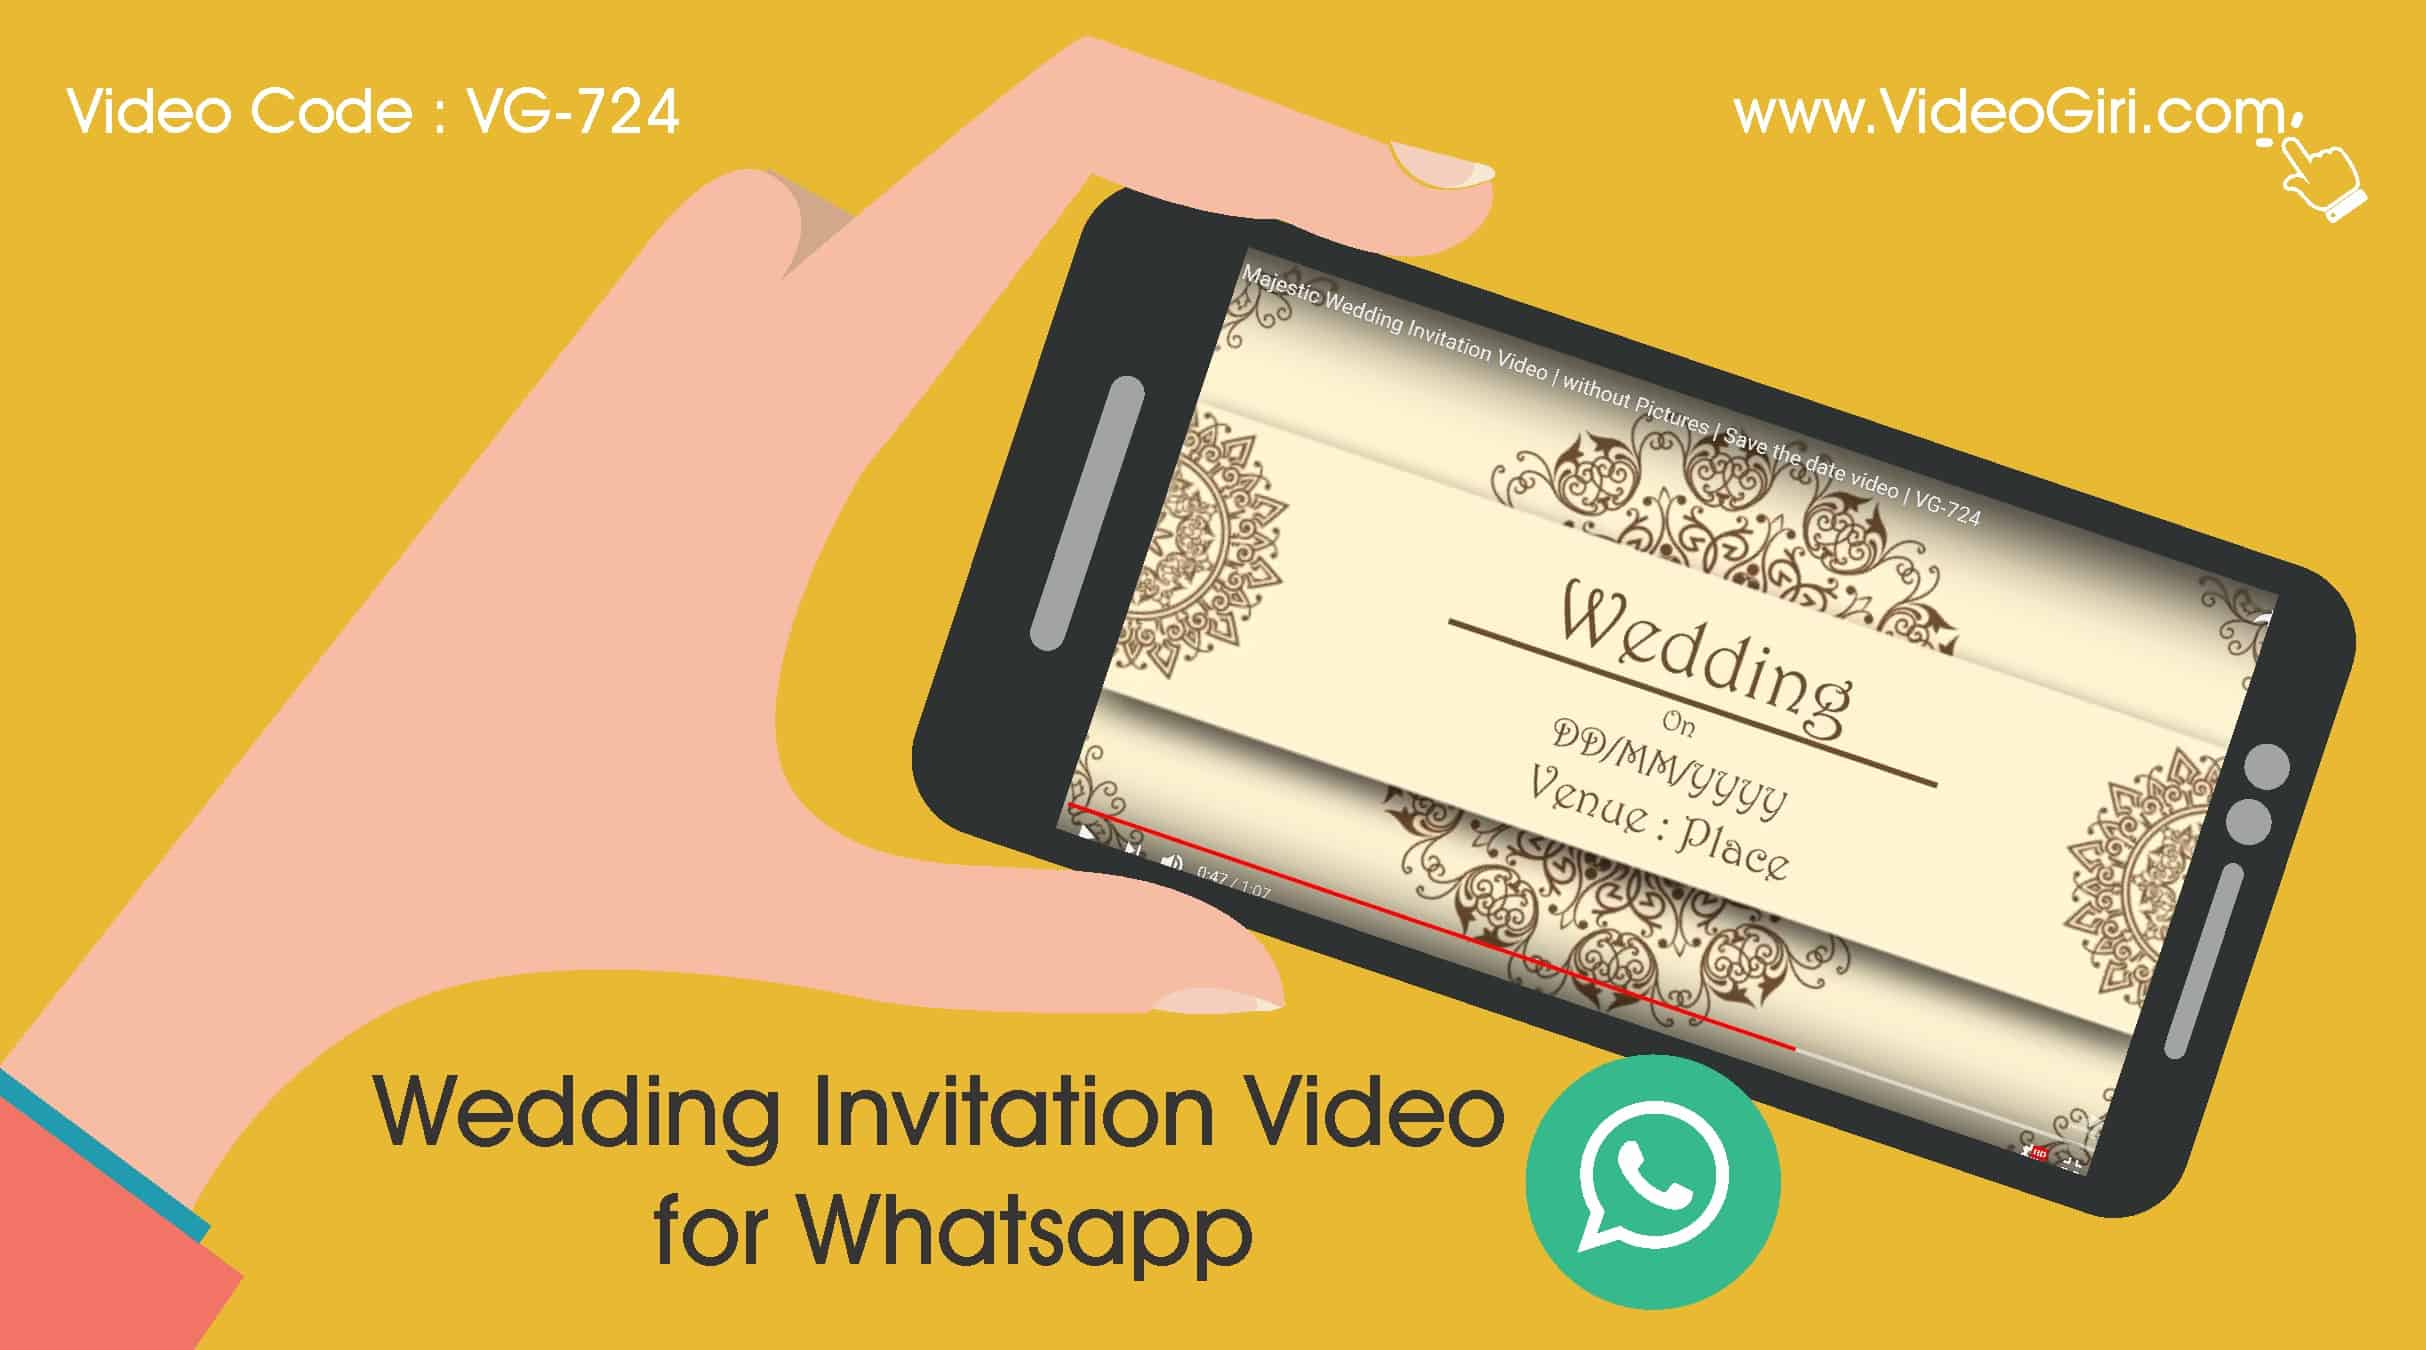 Majestic Wedding Invitation Video Without Pictures Save the Date Vg-724